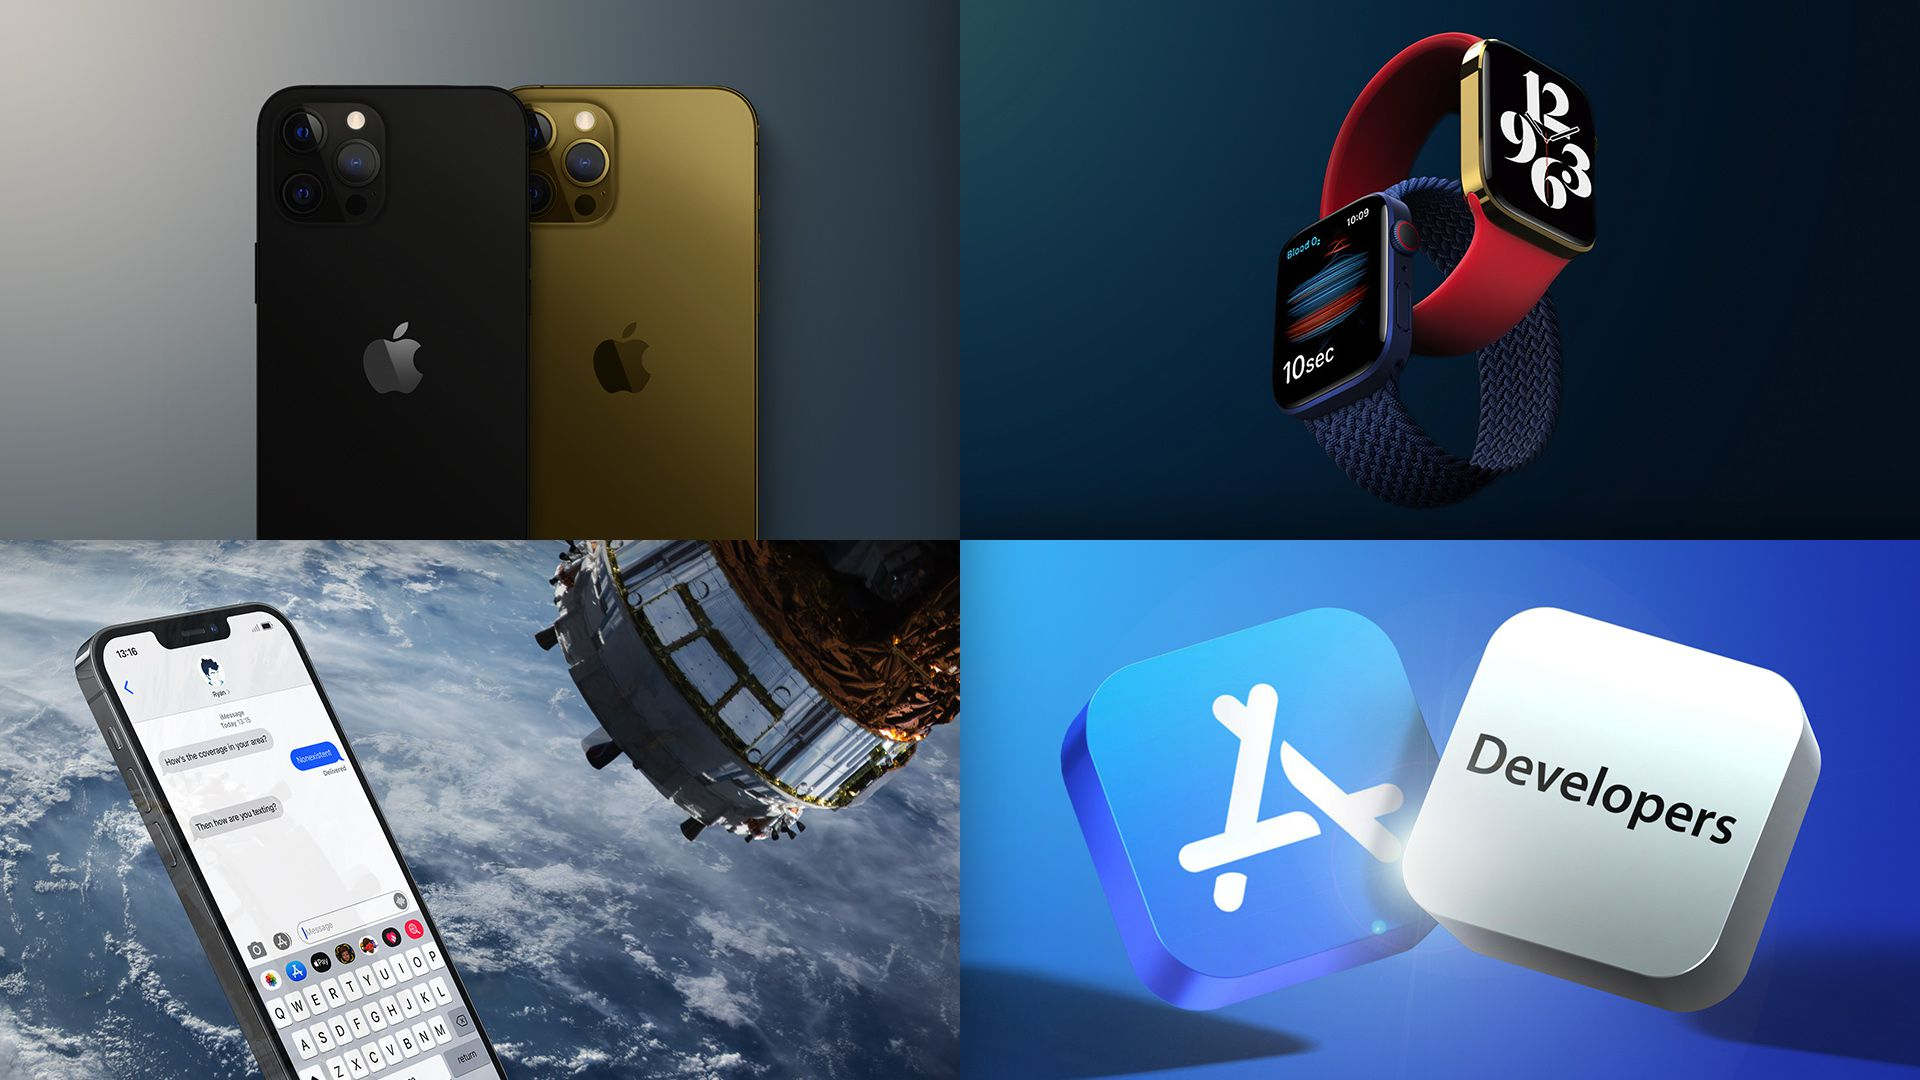 Top Stories: Last-Minute iPhone 13 Rumors, Apple Announces App Store Changes, and More